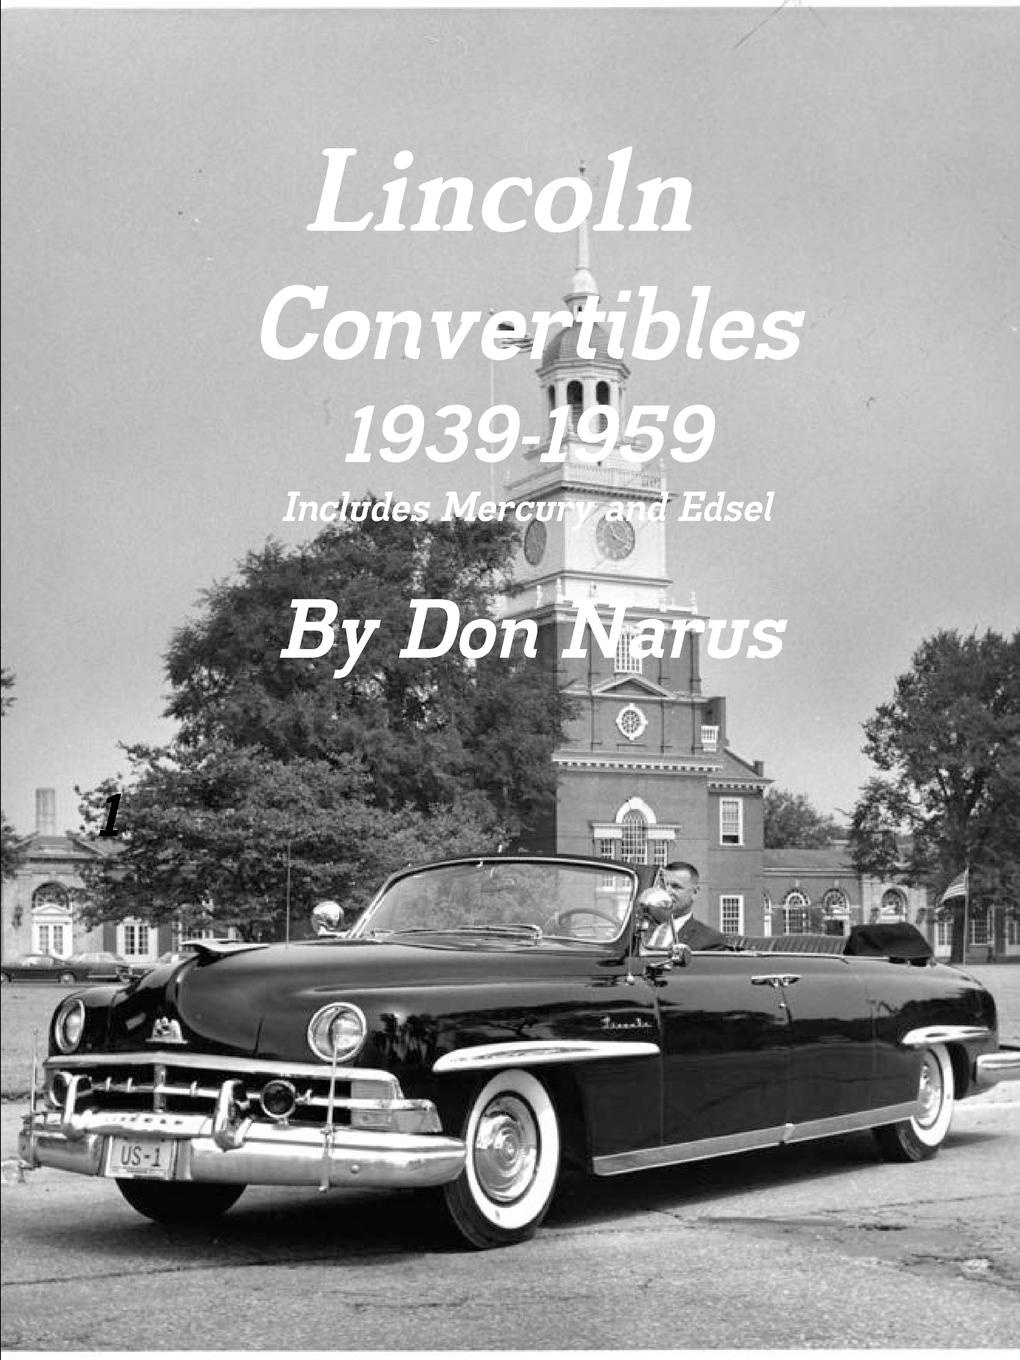 Don Narus Lincoln Convertibles 1939-1959